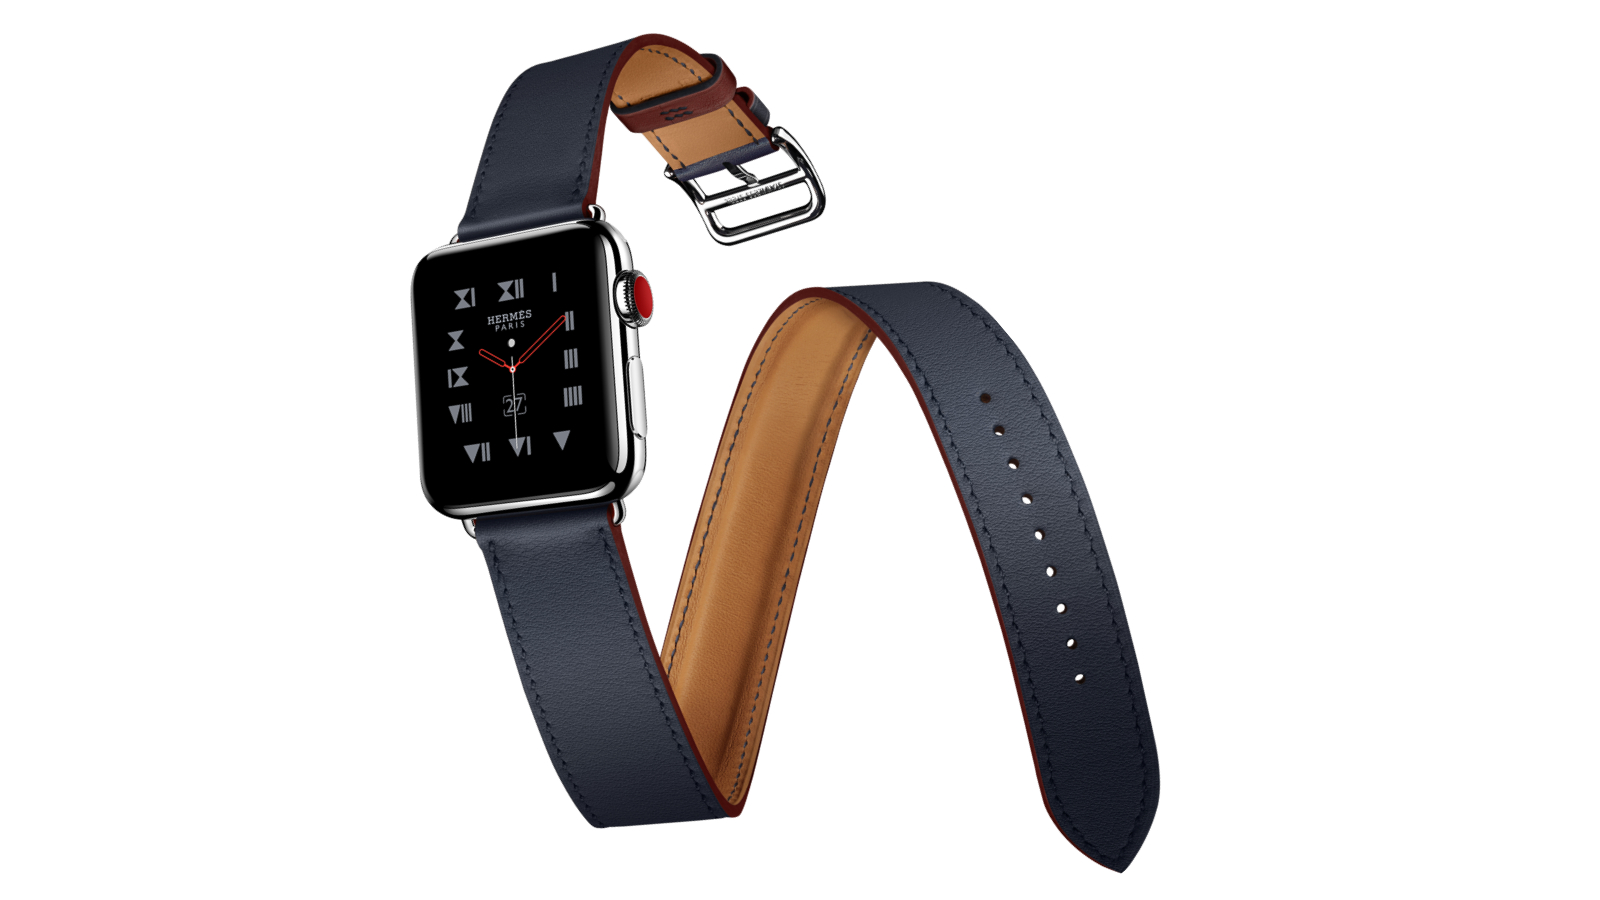 Apple Watch Hermès with the Double Tour strap (Image Credit: Apple)